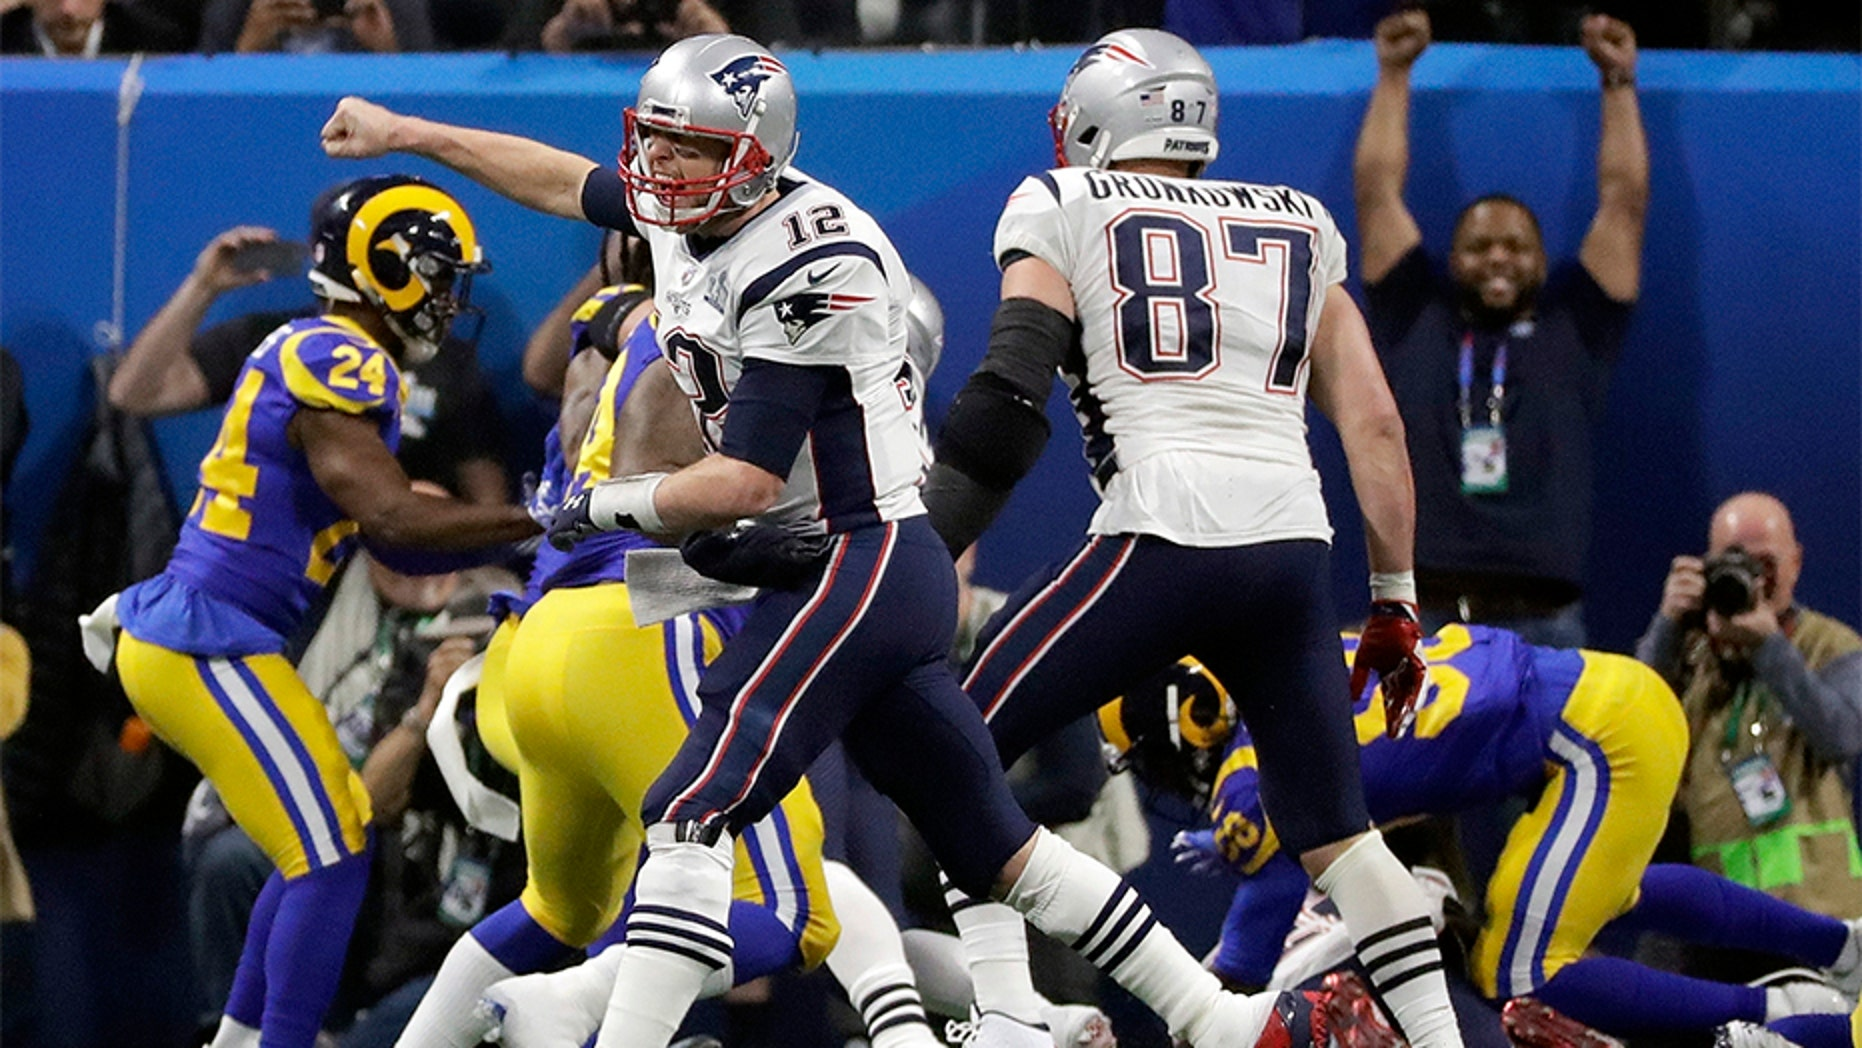 New England Patriots' Tom Brady celebrates a touchdown run by Sony Michel during the second half of the NFL Super Bowl 53 football game against the Los Angeles Rams.